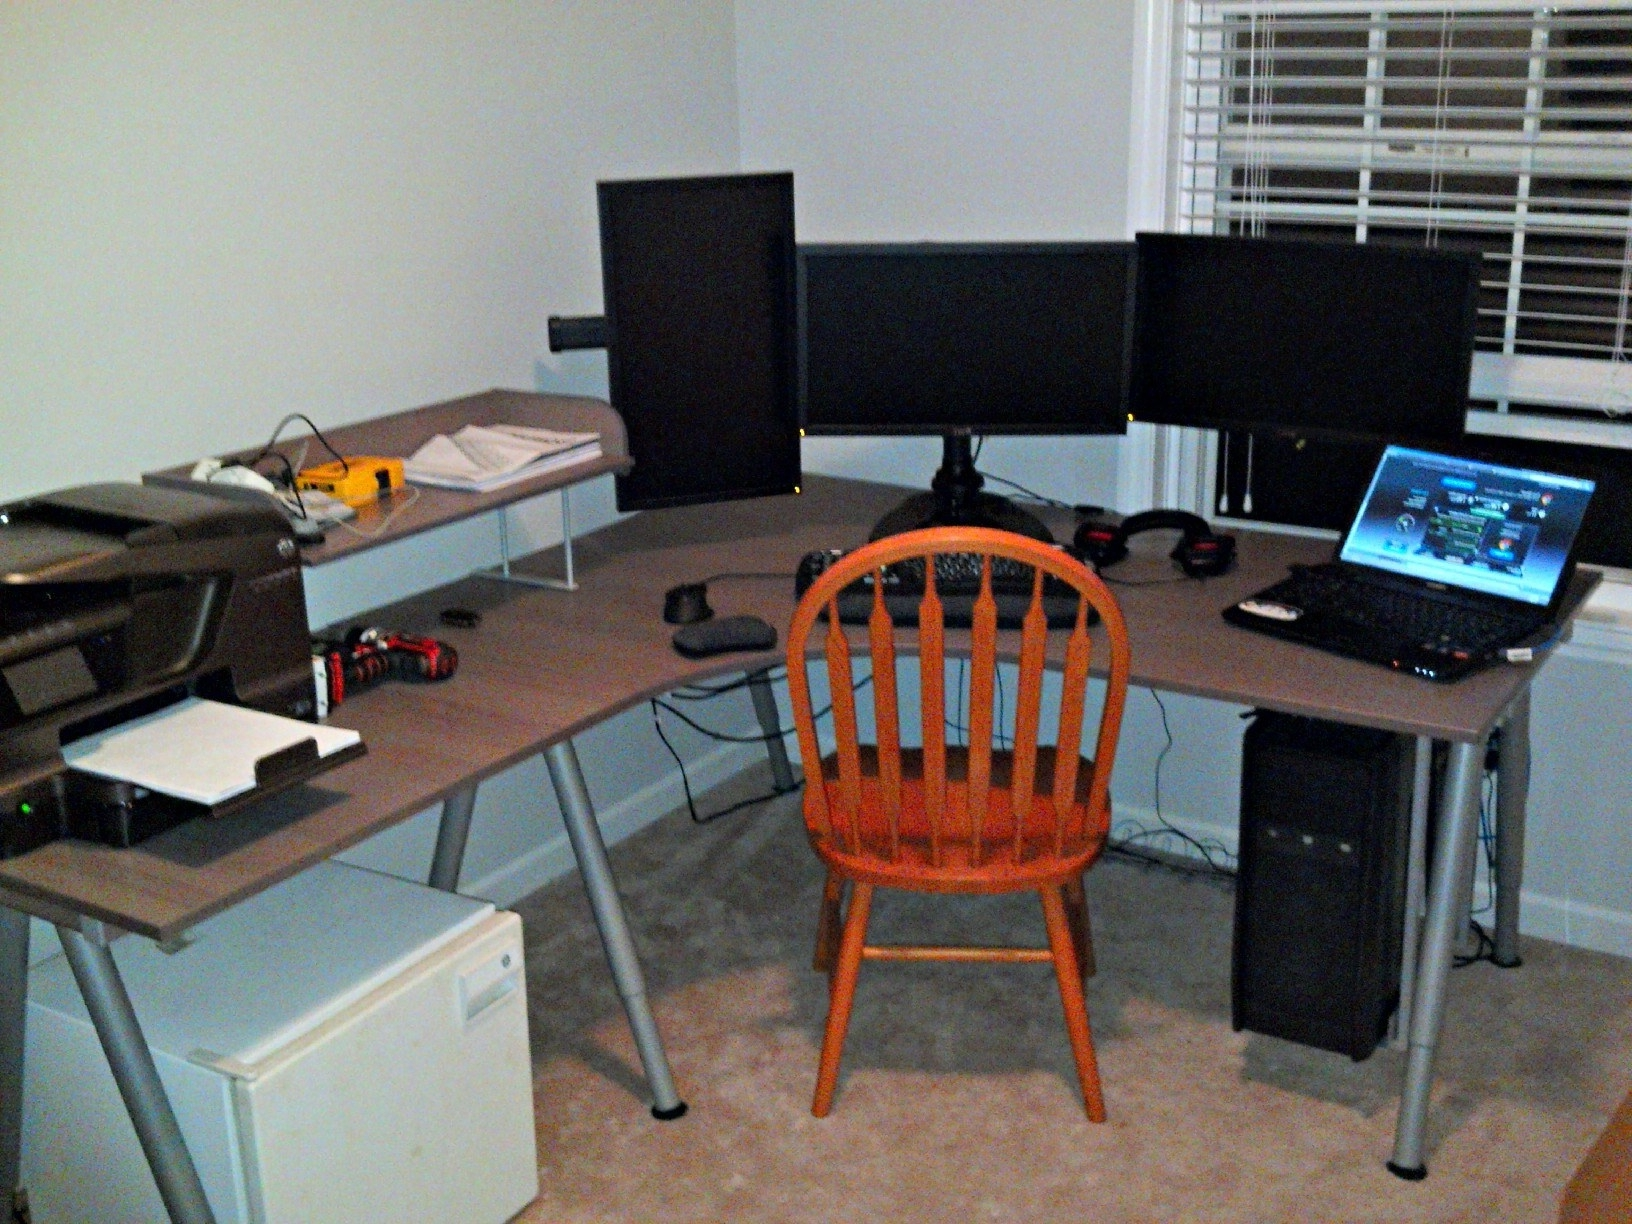 Widely Used Is The Ikea Galant The Go To Desk Of A Gamer? I'm Considering With Regard To Ikea Galant Computer Desks (View 19 of 20)